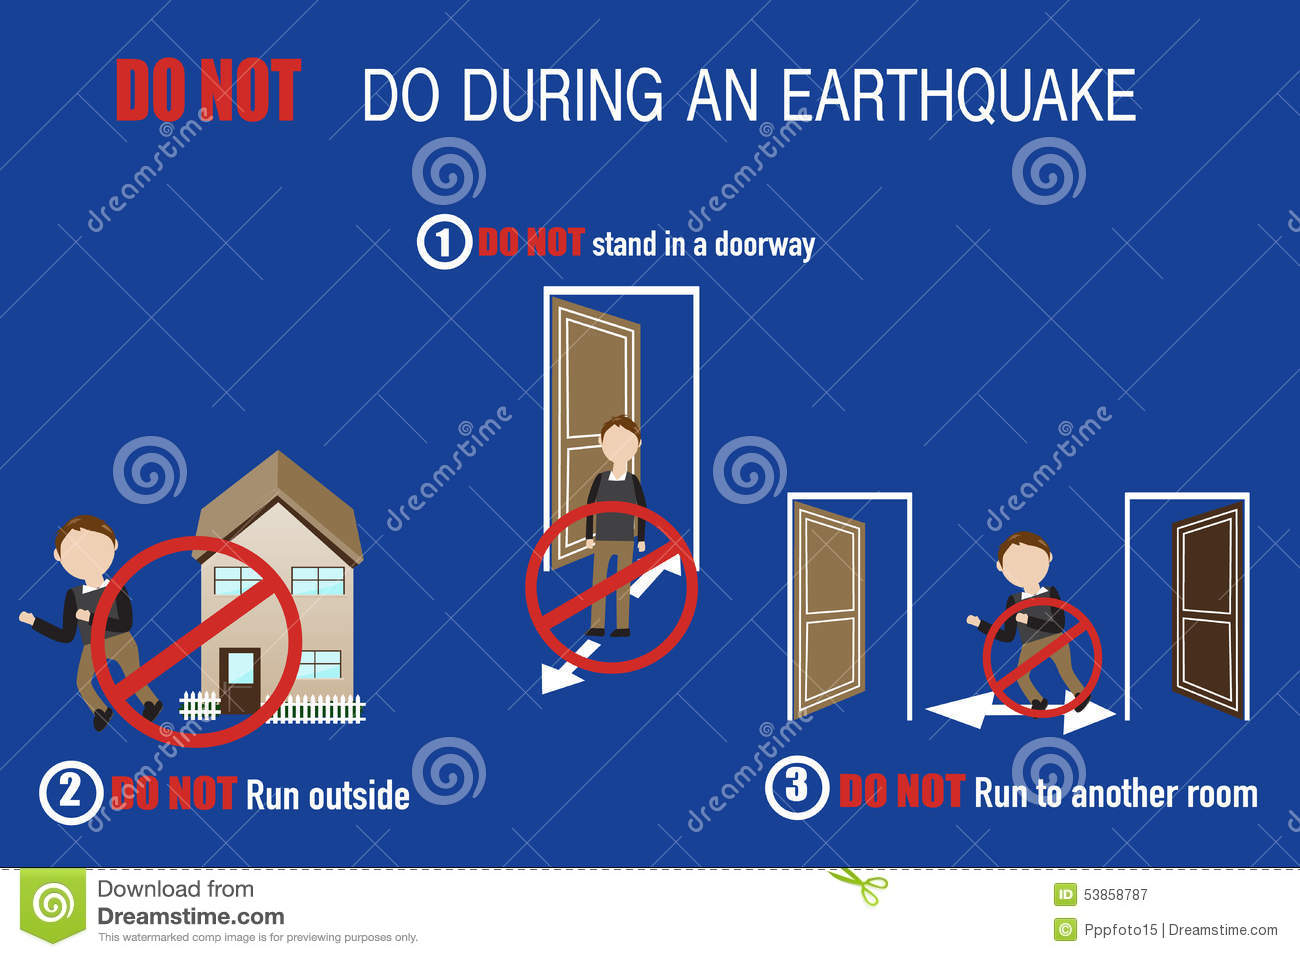 does california need an earthquake early warning An early warning system for earthquakes has been expanded to oregon and washington, joining california in testing a prototype that could give people seconds or up to a minute of warning before strong shaking begins.